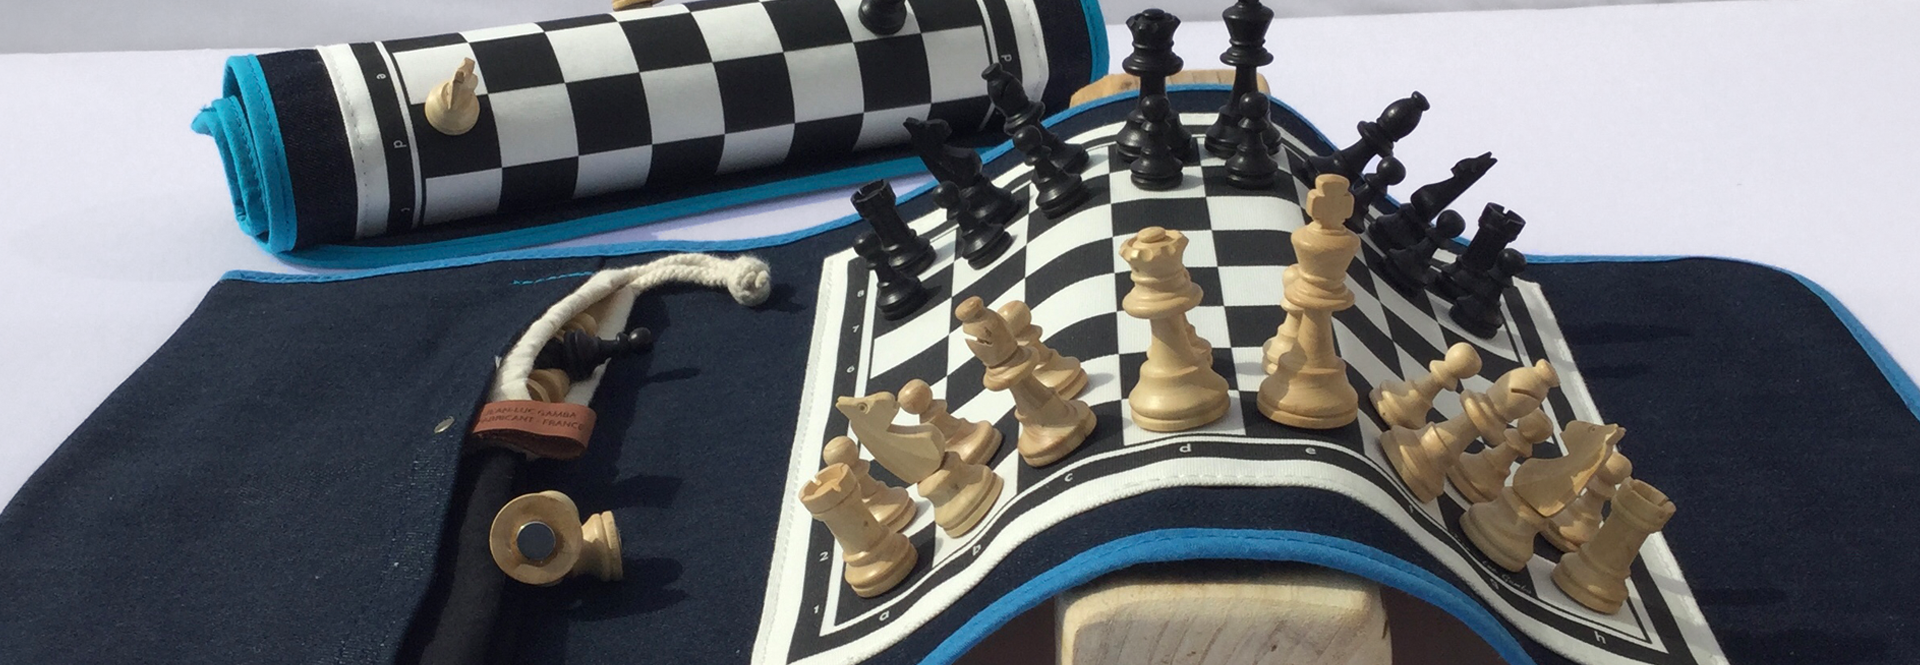 chess board - promo Chess France